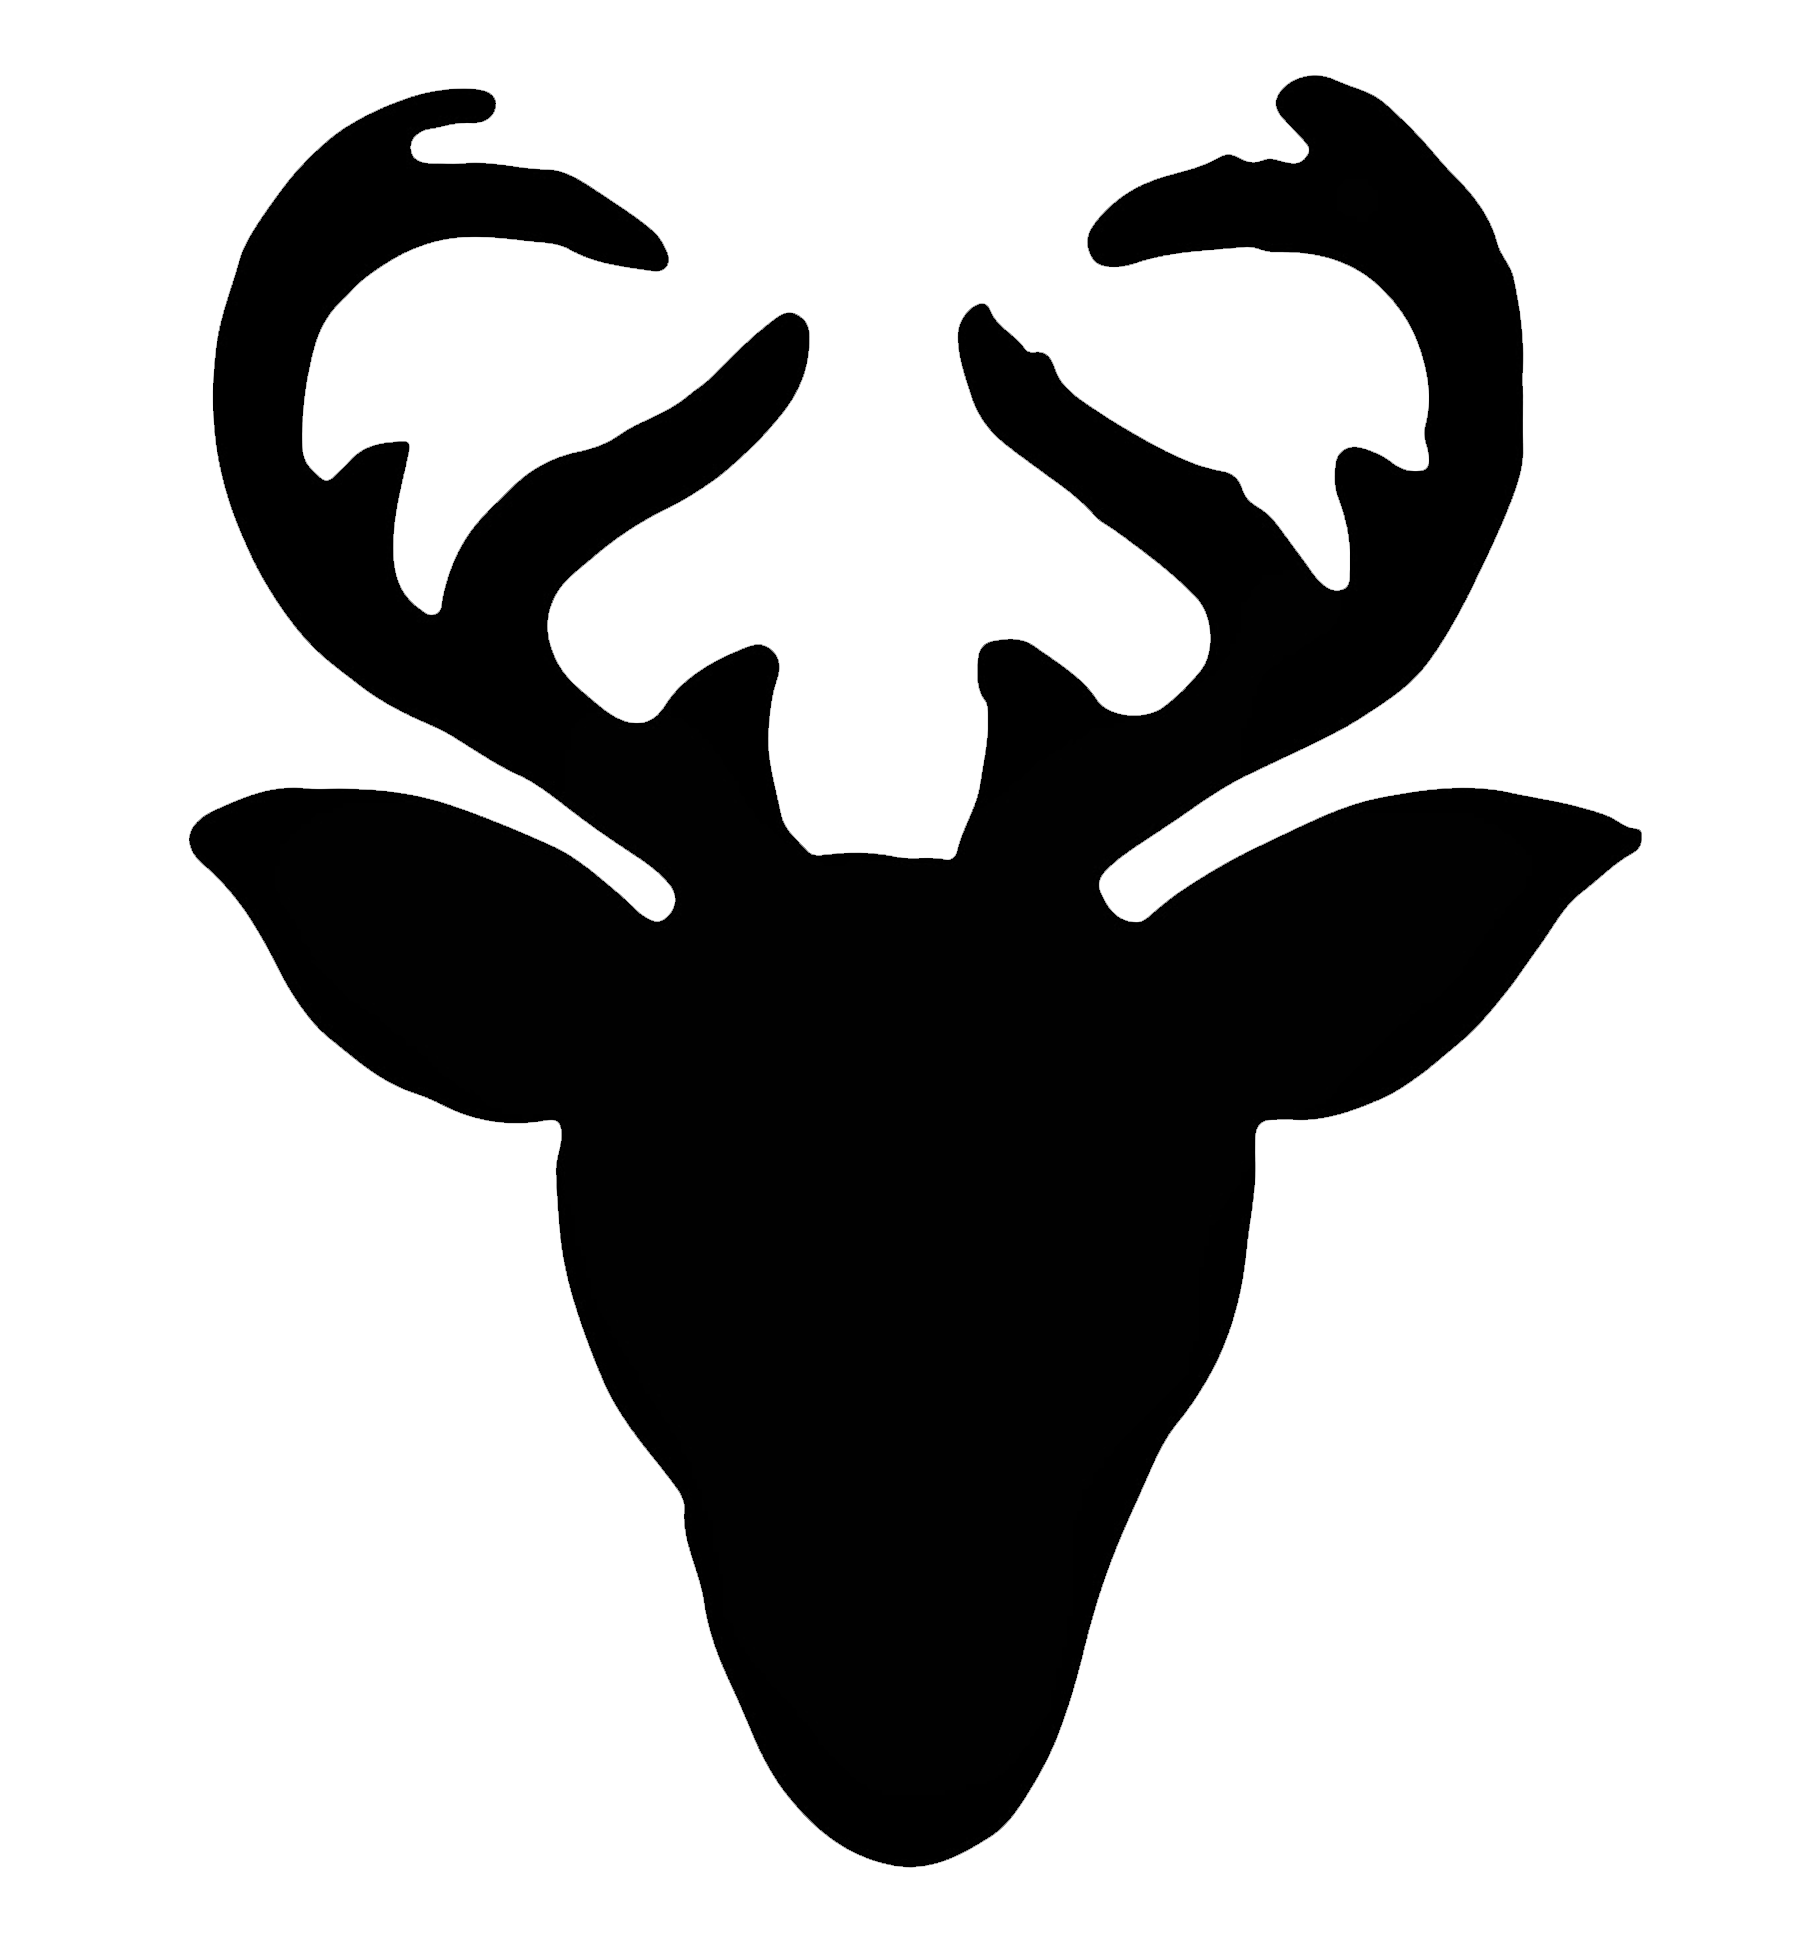 Free Reindeer Face Silhouette, Download Free Clip Art, Free.